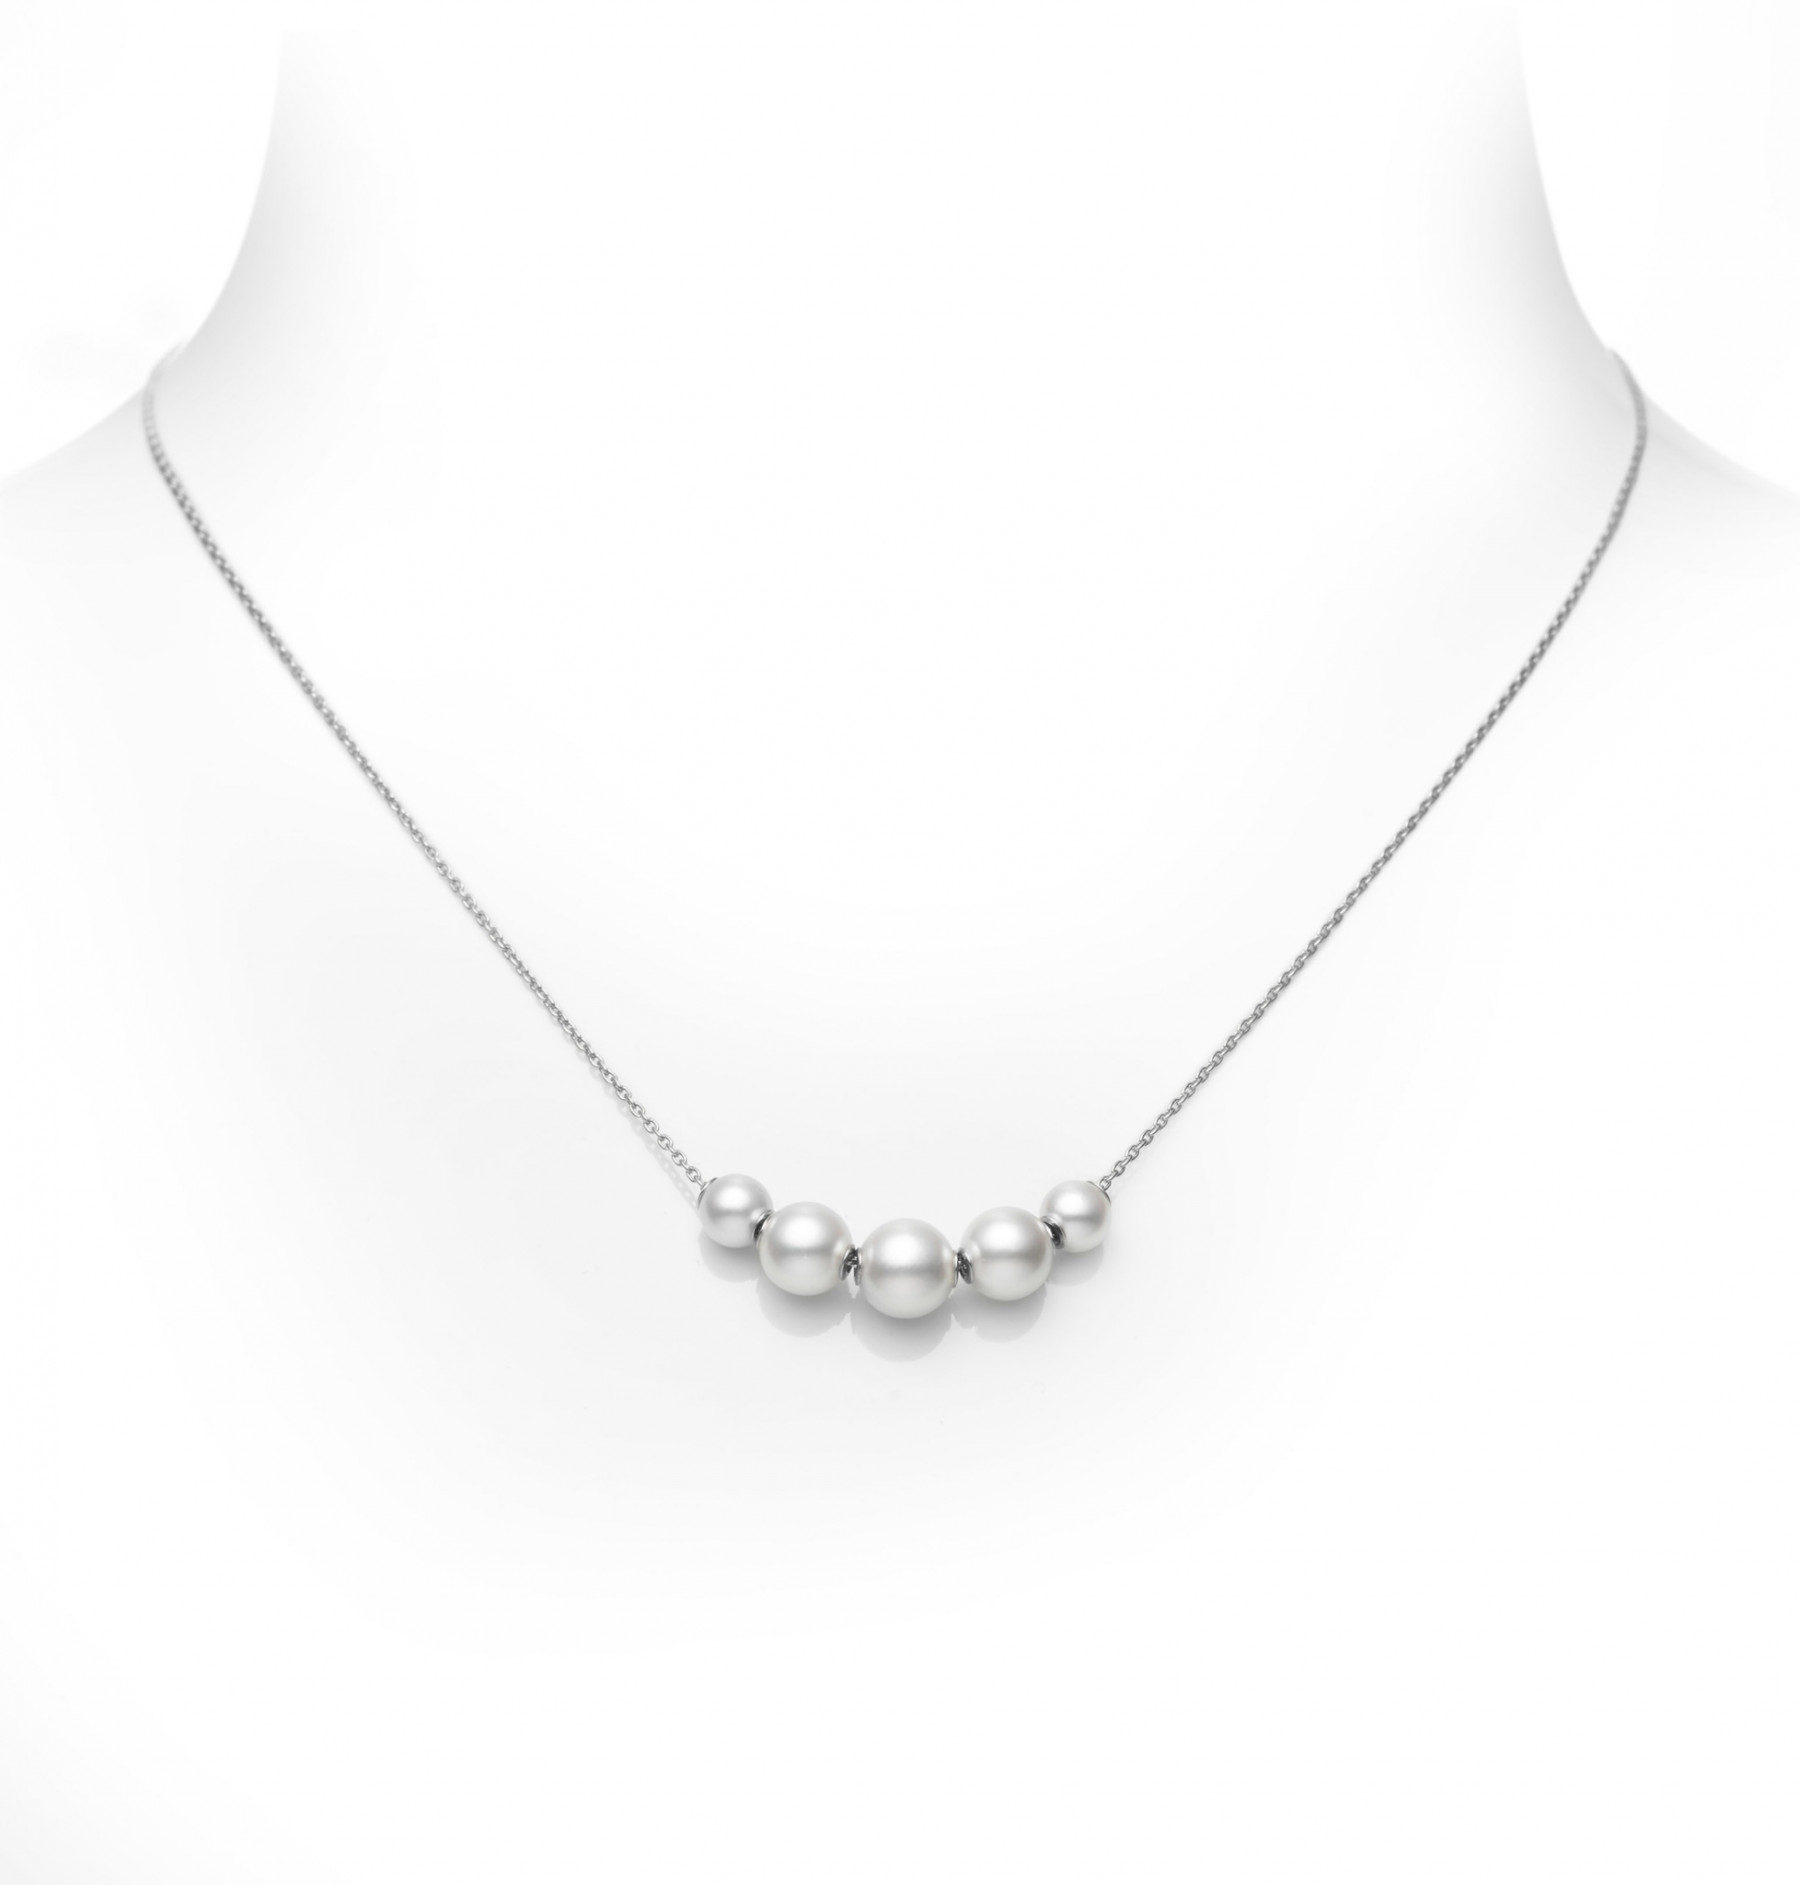 Mikimoto Five Pearl Station Necklace in White Gold